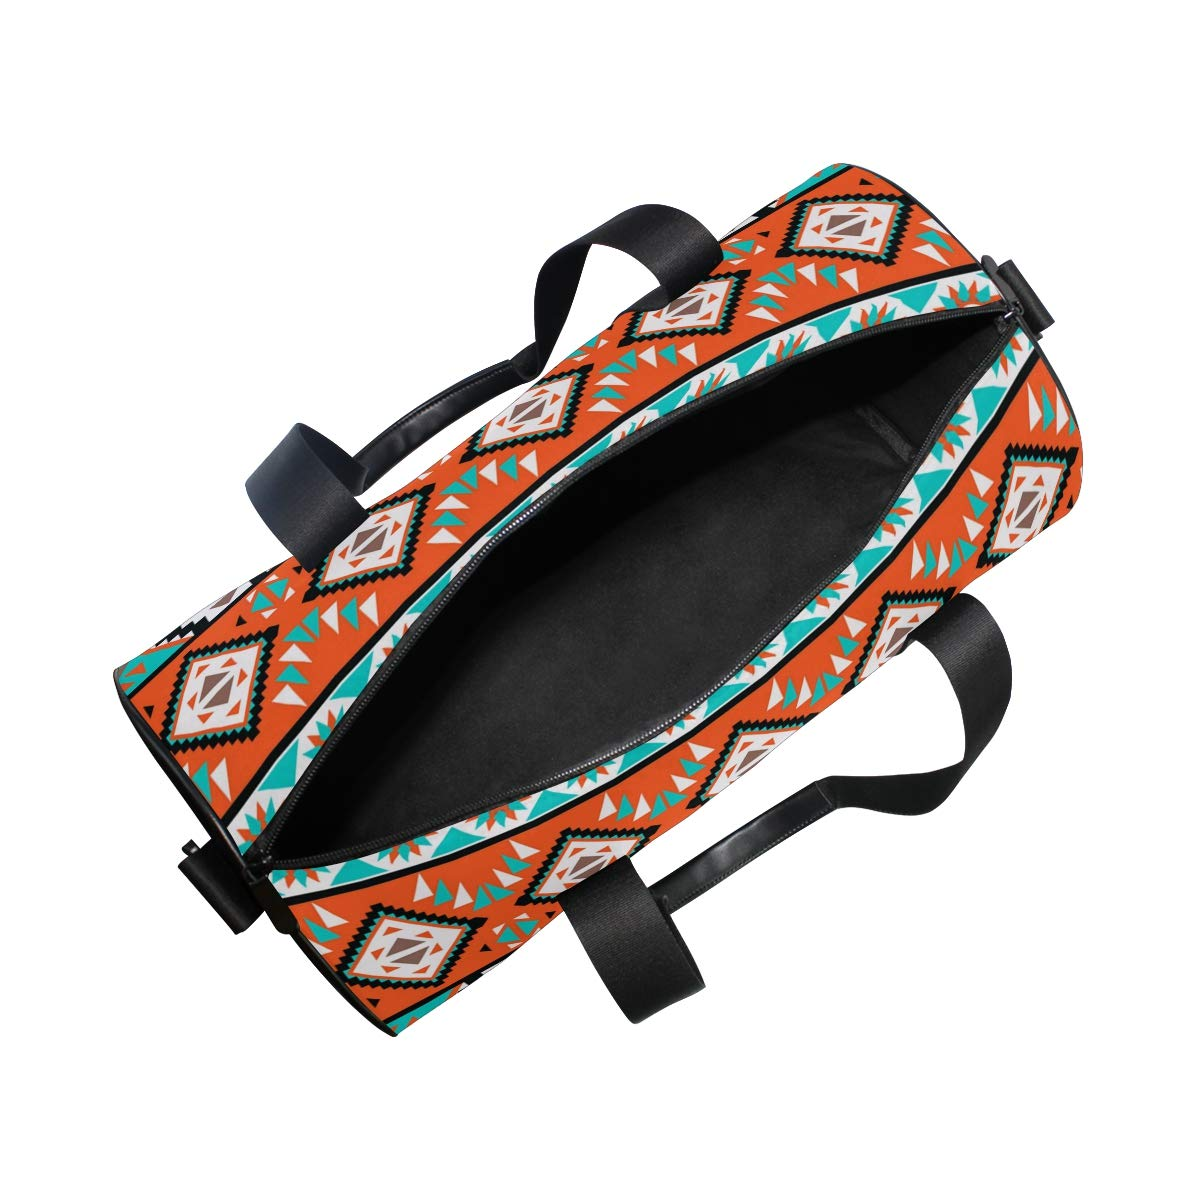 Sports Gym Duffel Barrel Bag Colorful Navajo Pattern Aztec Travel Luggage Handbag for Men Women